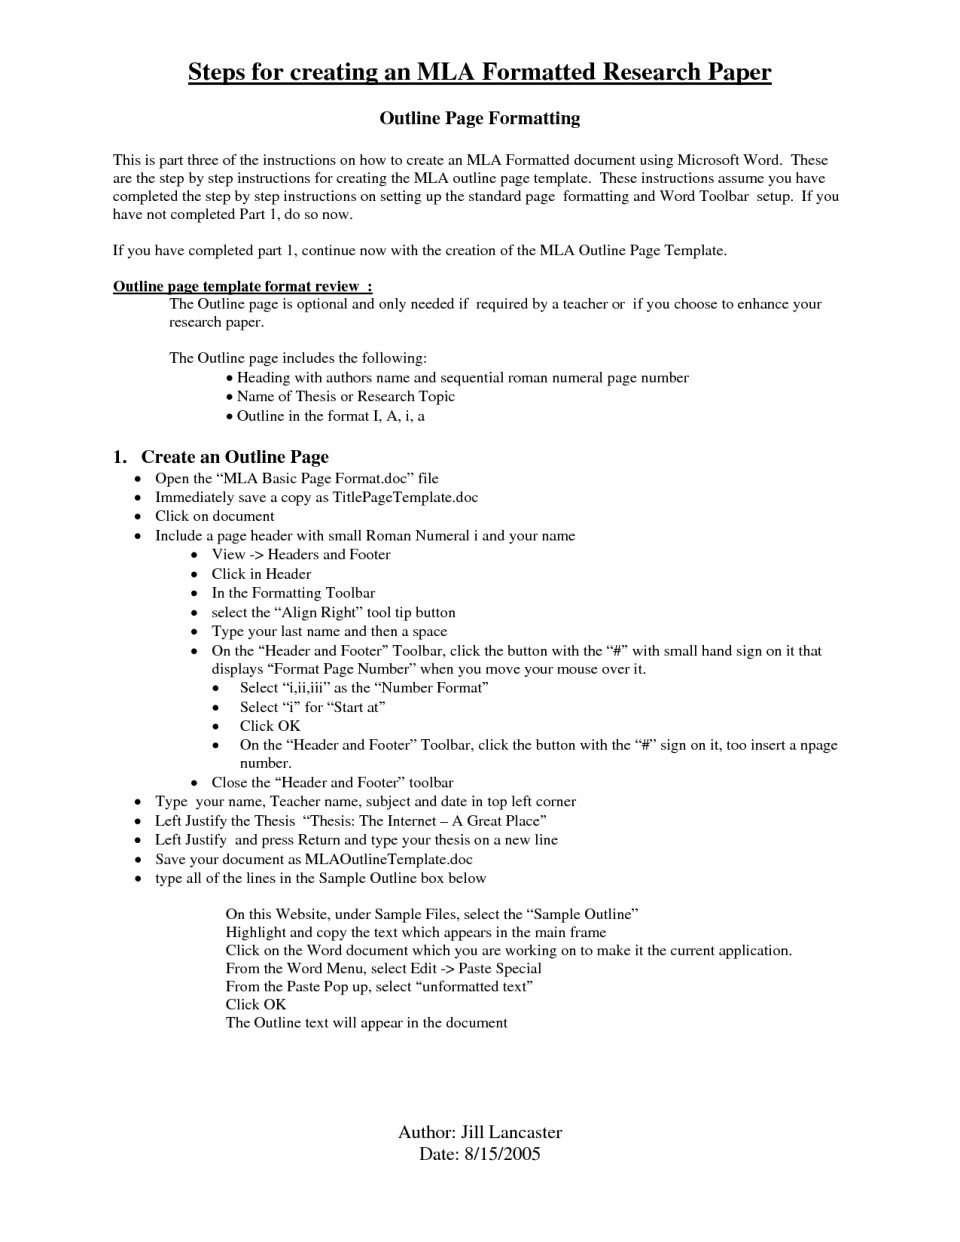 005 Mla Research Paper Outline Format Papers Template 477498 Unbelievable 8 960